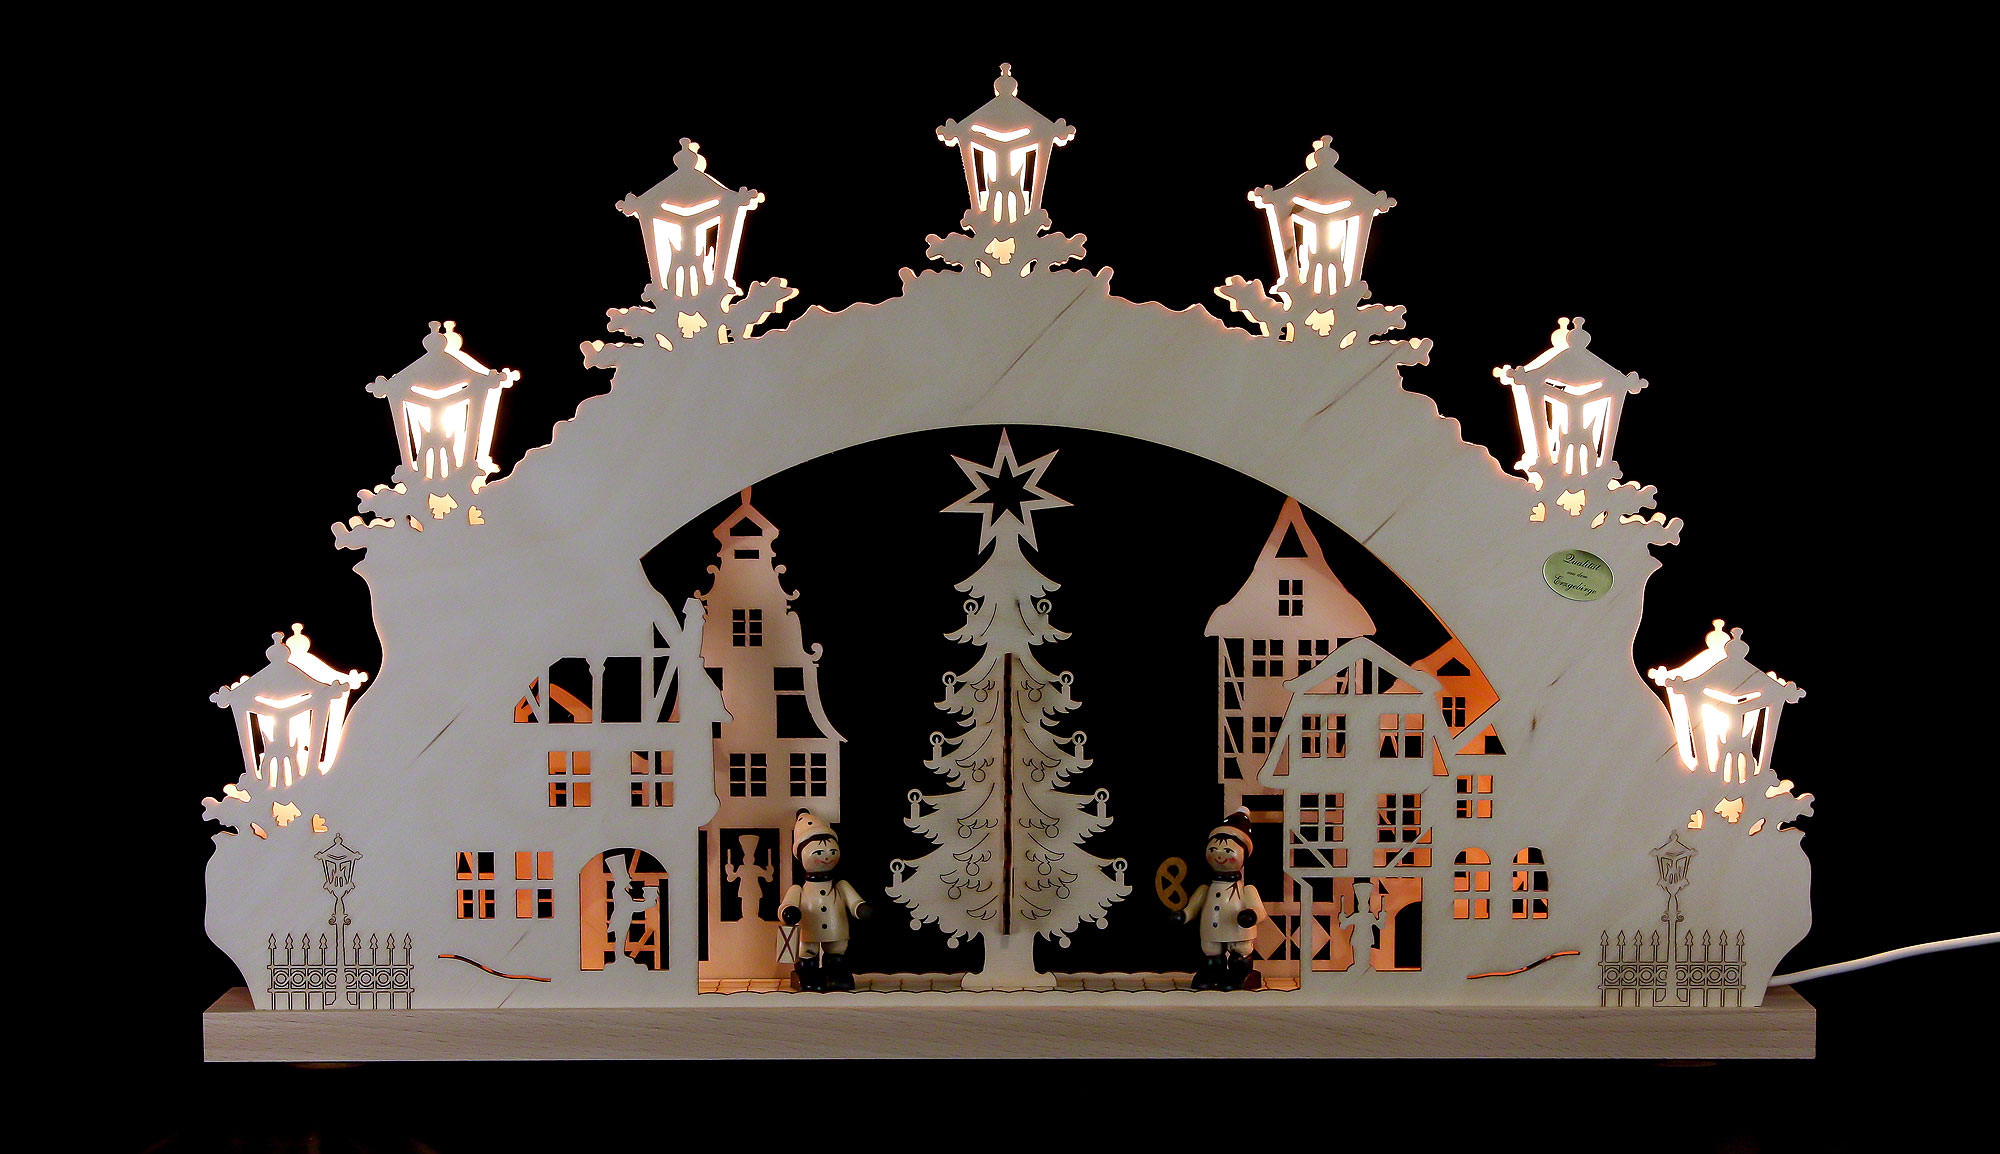 3d candle arch christmas market 52 32 4 5 cm 20 5 12 for Arch candle christmas decoration